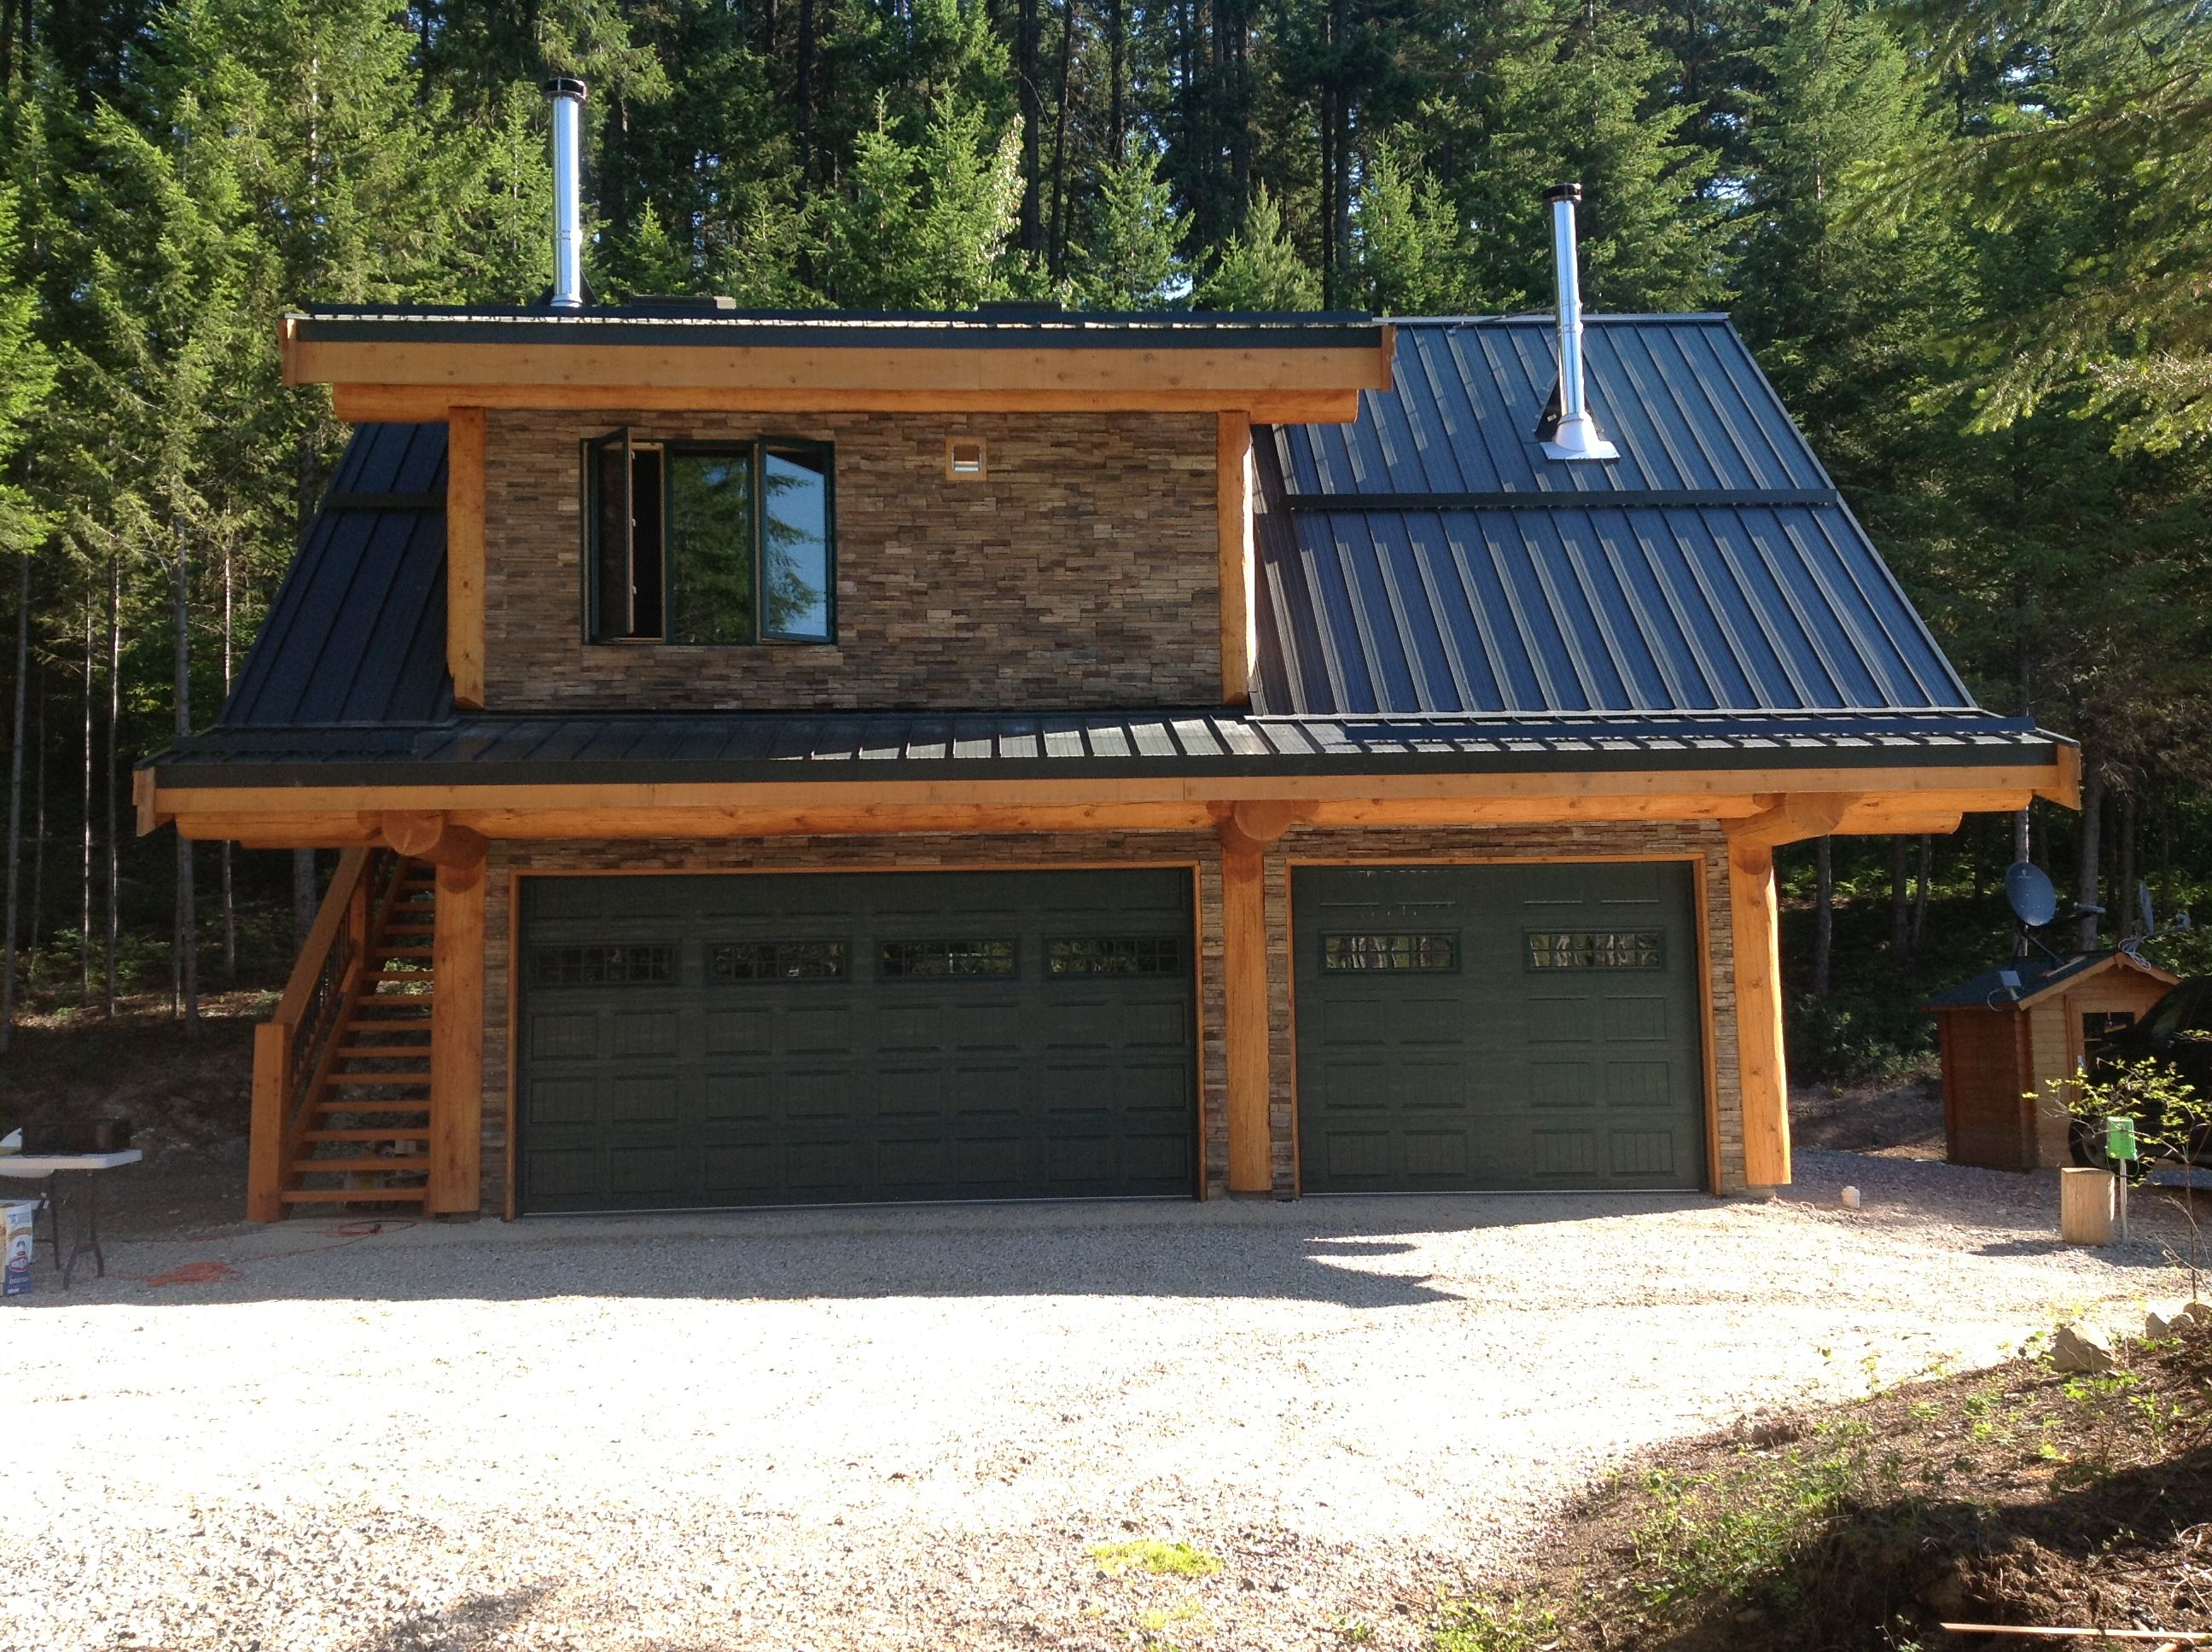 Post and beam carriage house plans - Post And Beam Log Homes Are One Of Artisan Log Homes Most Popular Log Home Style To Design And Build View Our Custom Log Homes Here